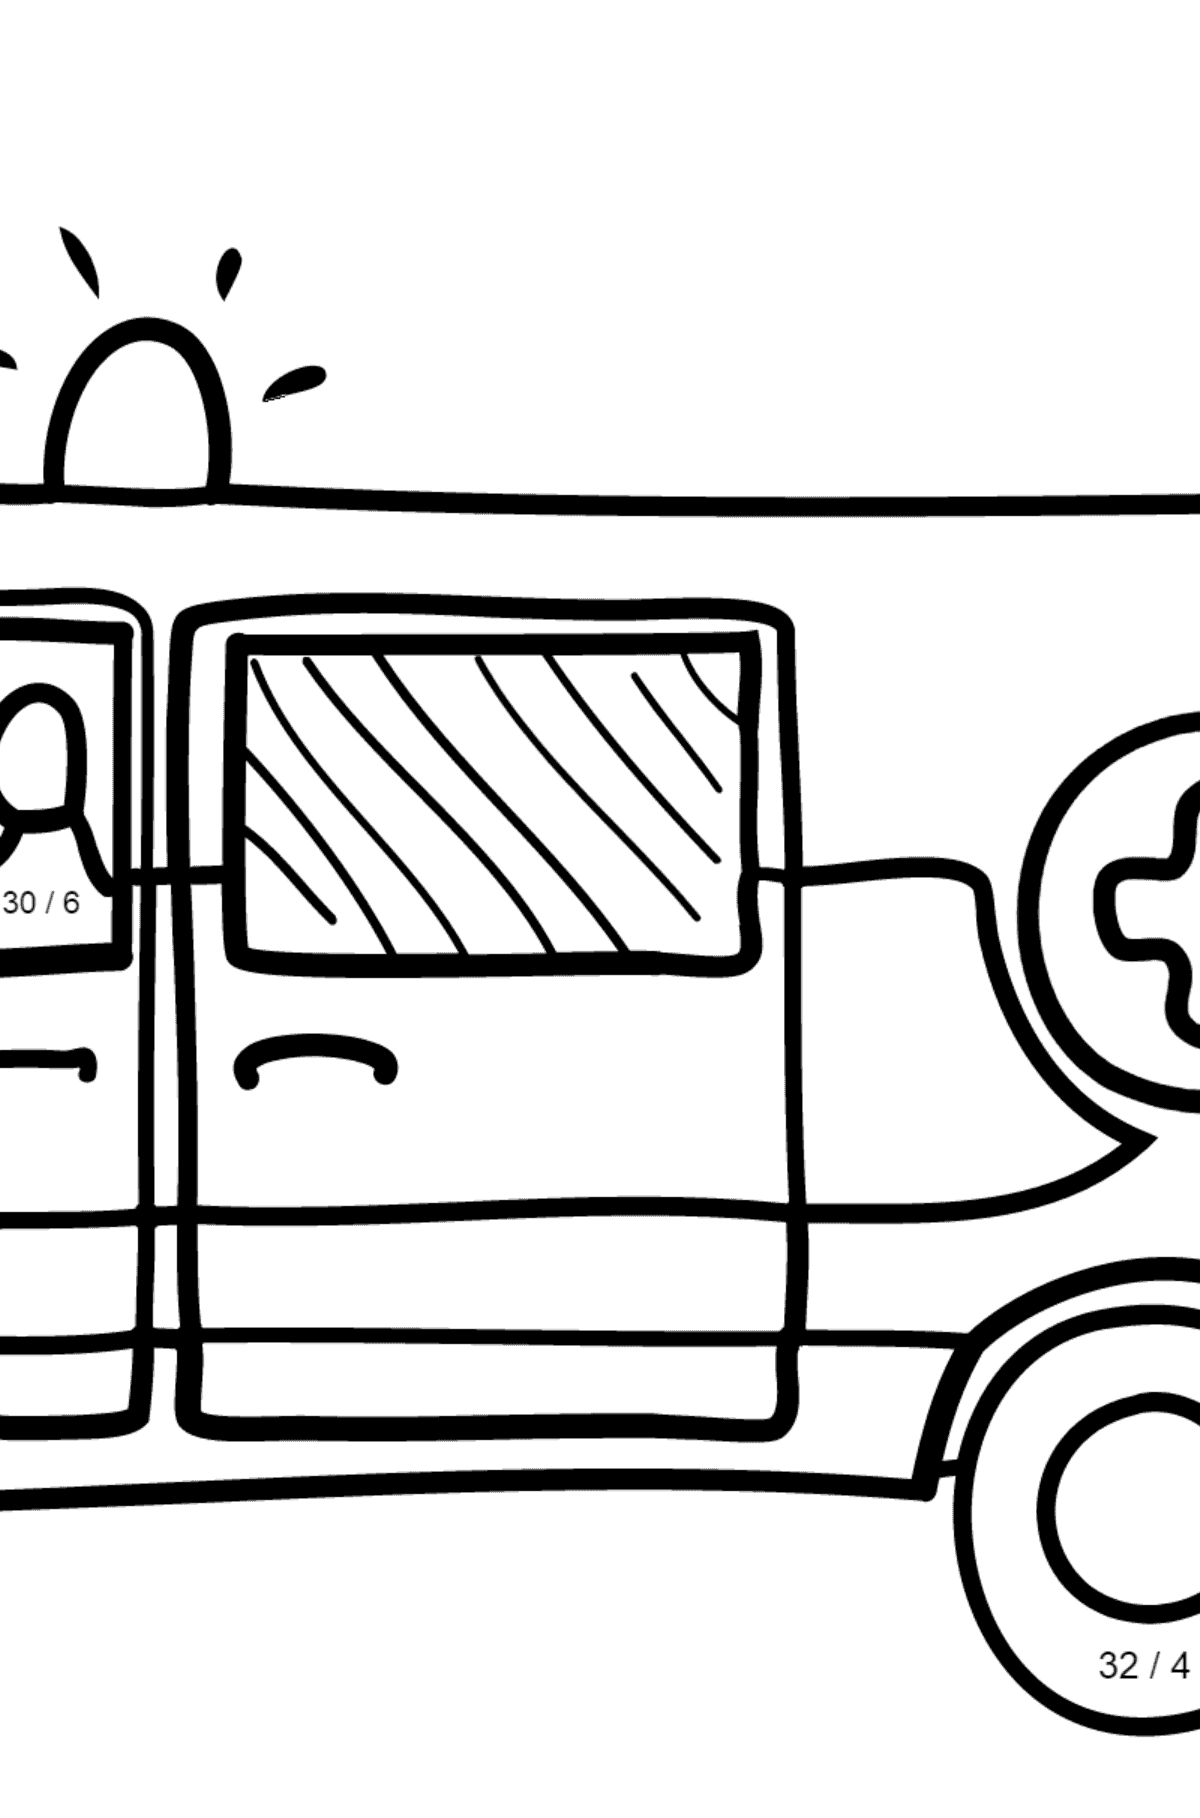 Coloring Page - An Ambulance for Kids  - Color by Number Division